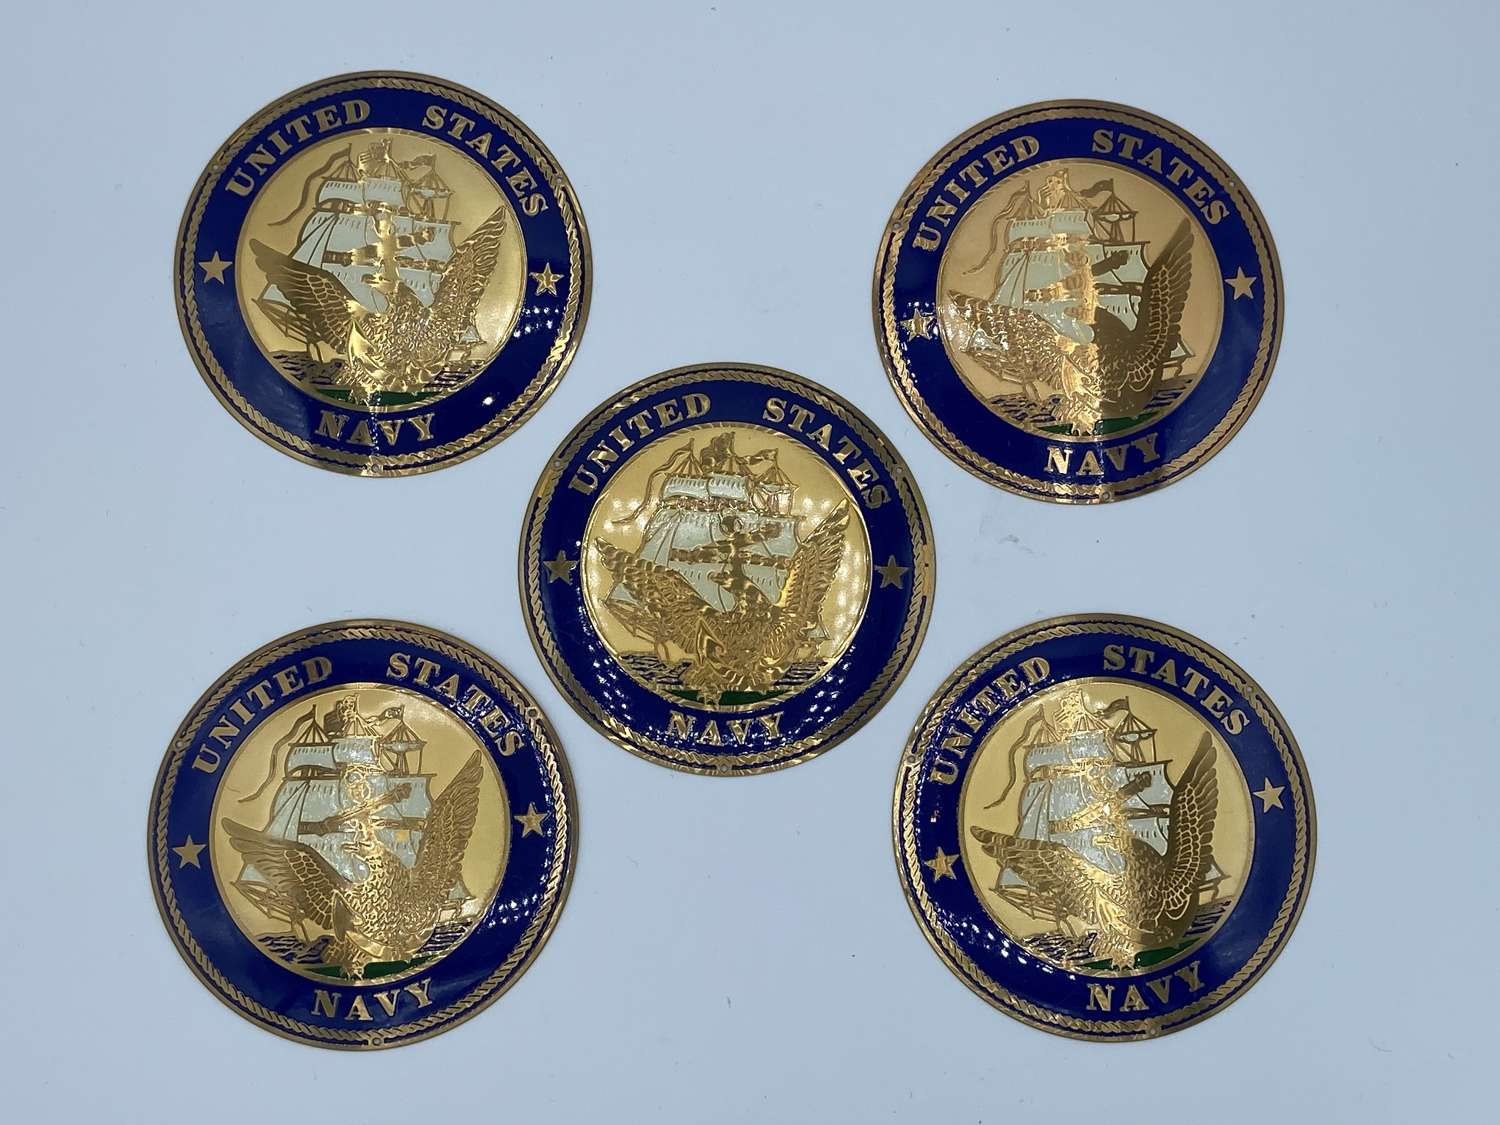 5 X Vintage United States Navy Brass & Enamel Plaques